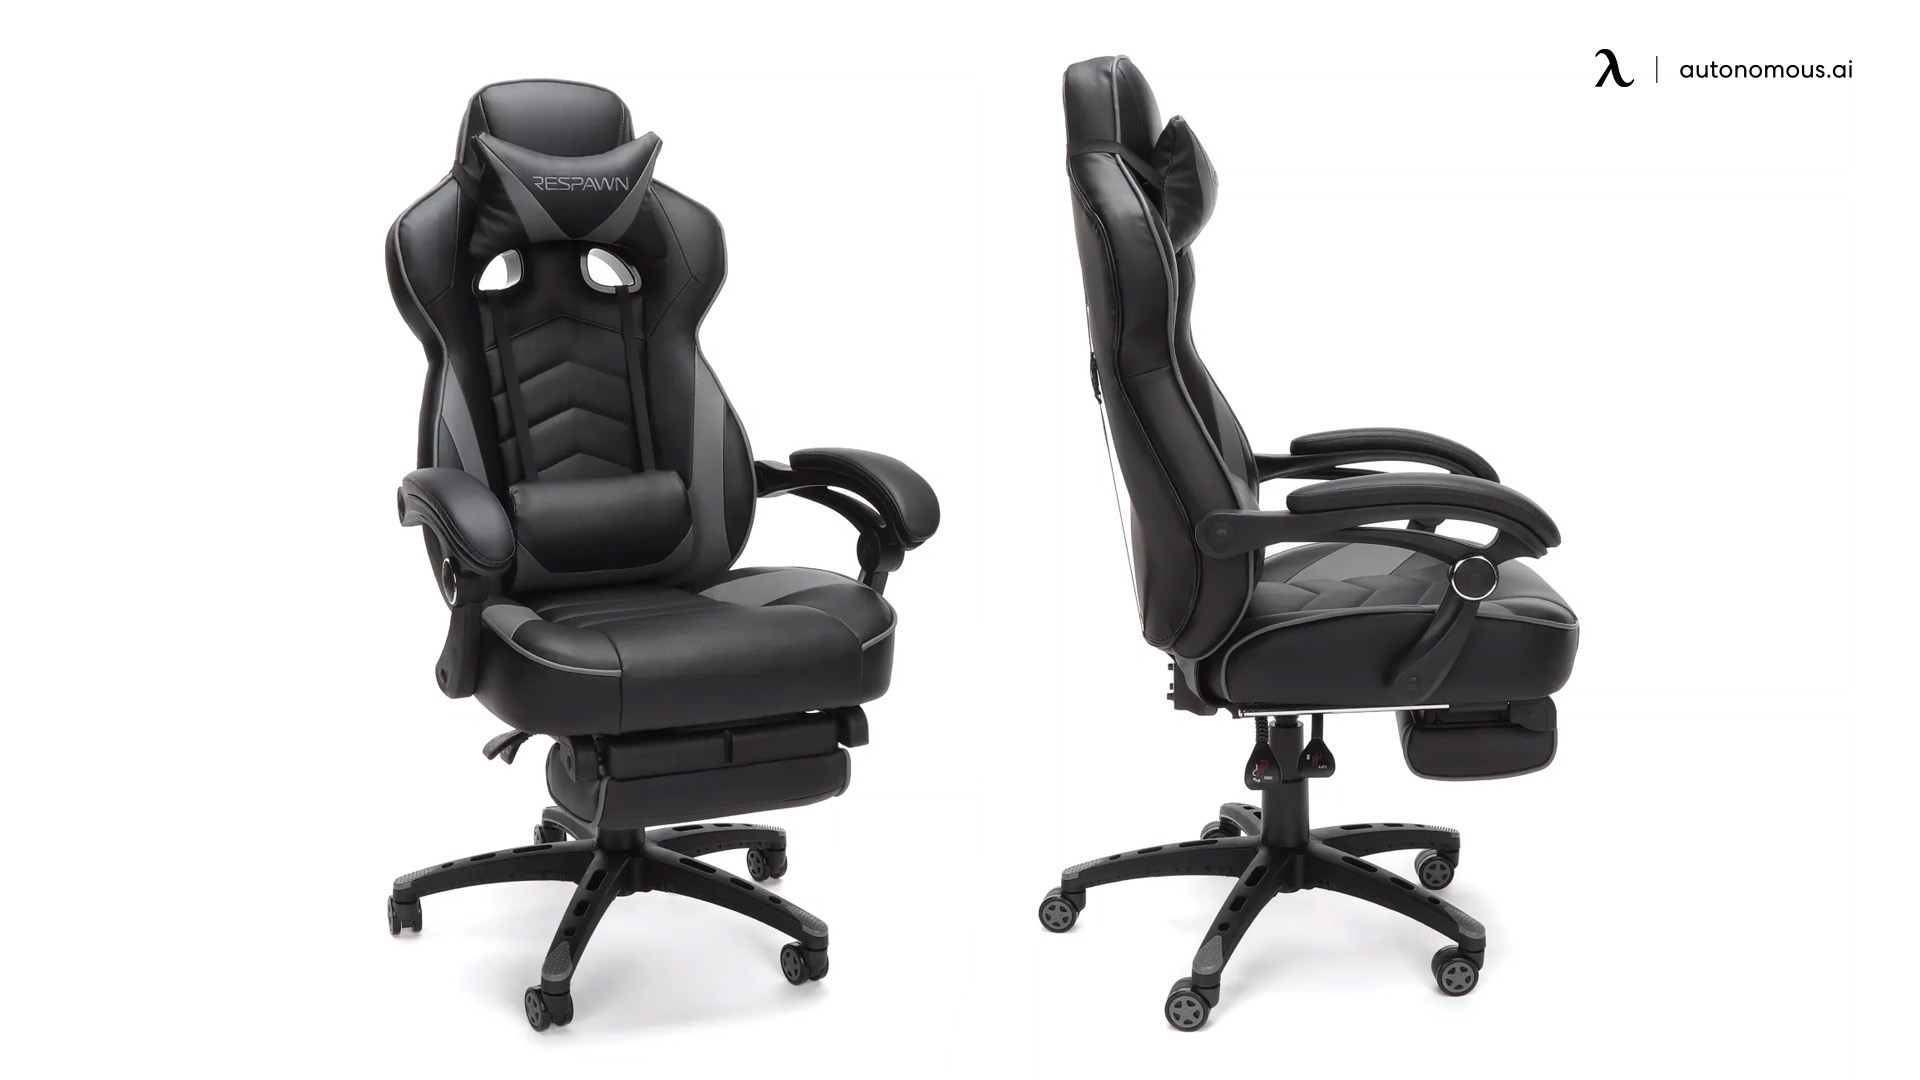 Respawn Reclining Office Chair with Footrest